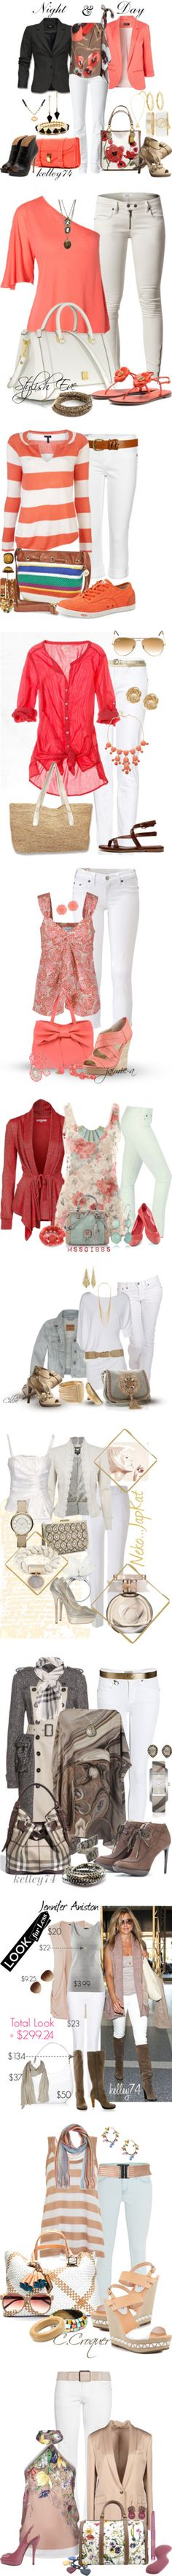 """""""White Jeans"""" by kelley74 ❤ liked on Polyvore"""